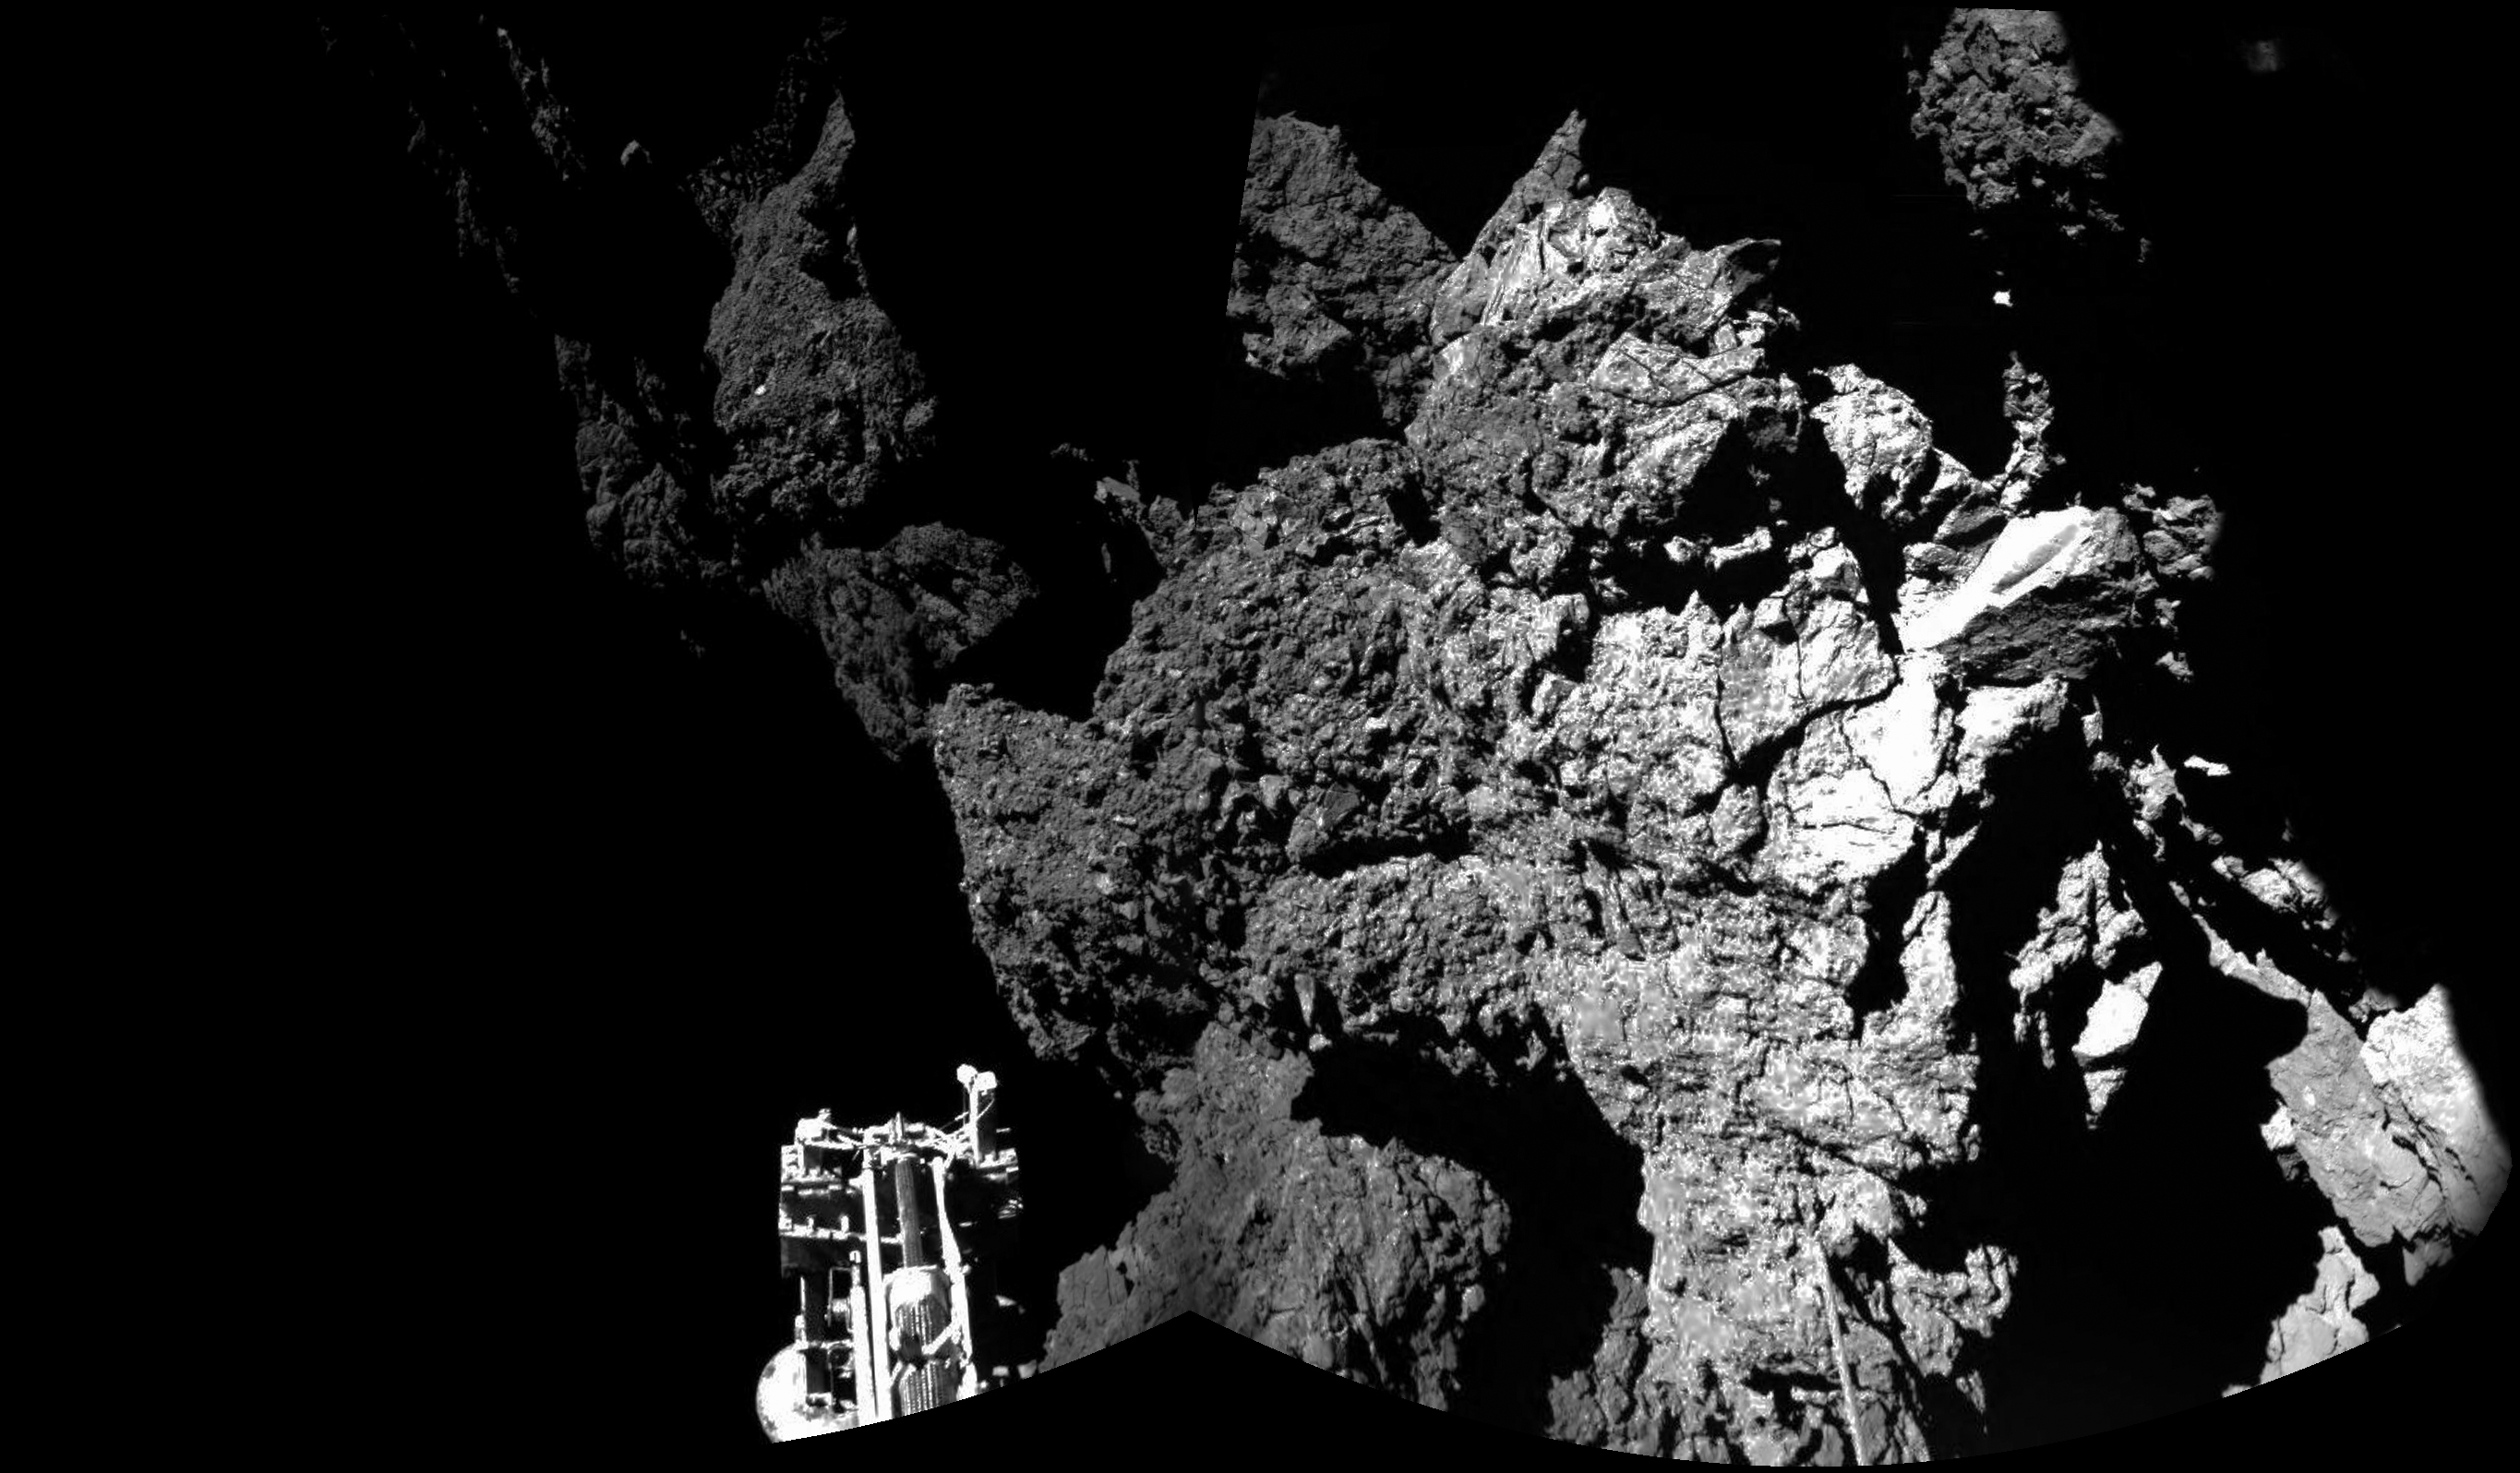 The first image from the surface of a comet! This picture from the Philae lander's CIVA camera system confirm the probe is safely on the surface of comet 67P/Churyumov-Gerasimenko. Credit: ESA/Rosetta/Philae/CIVA